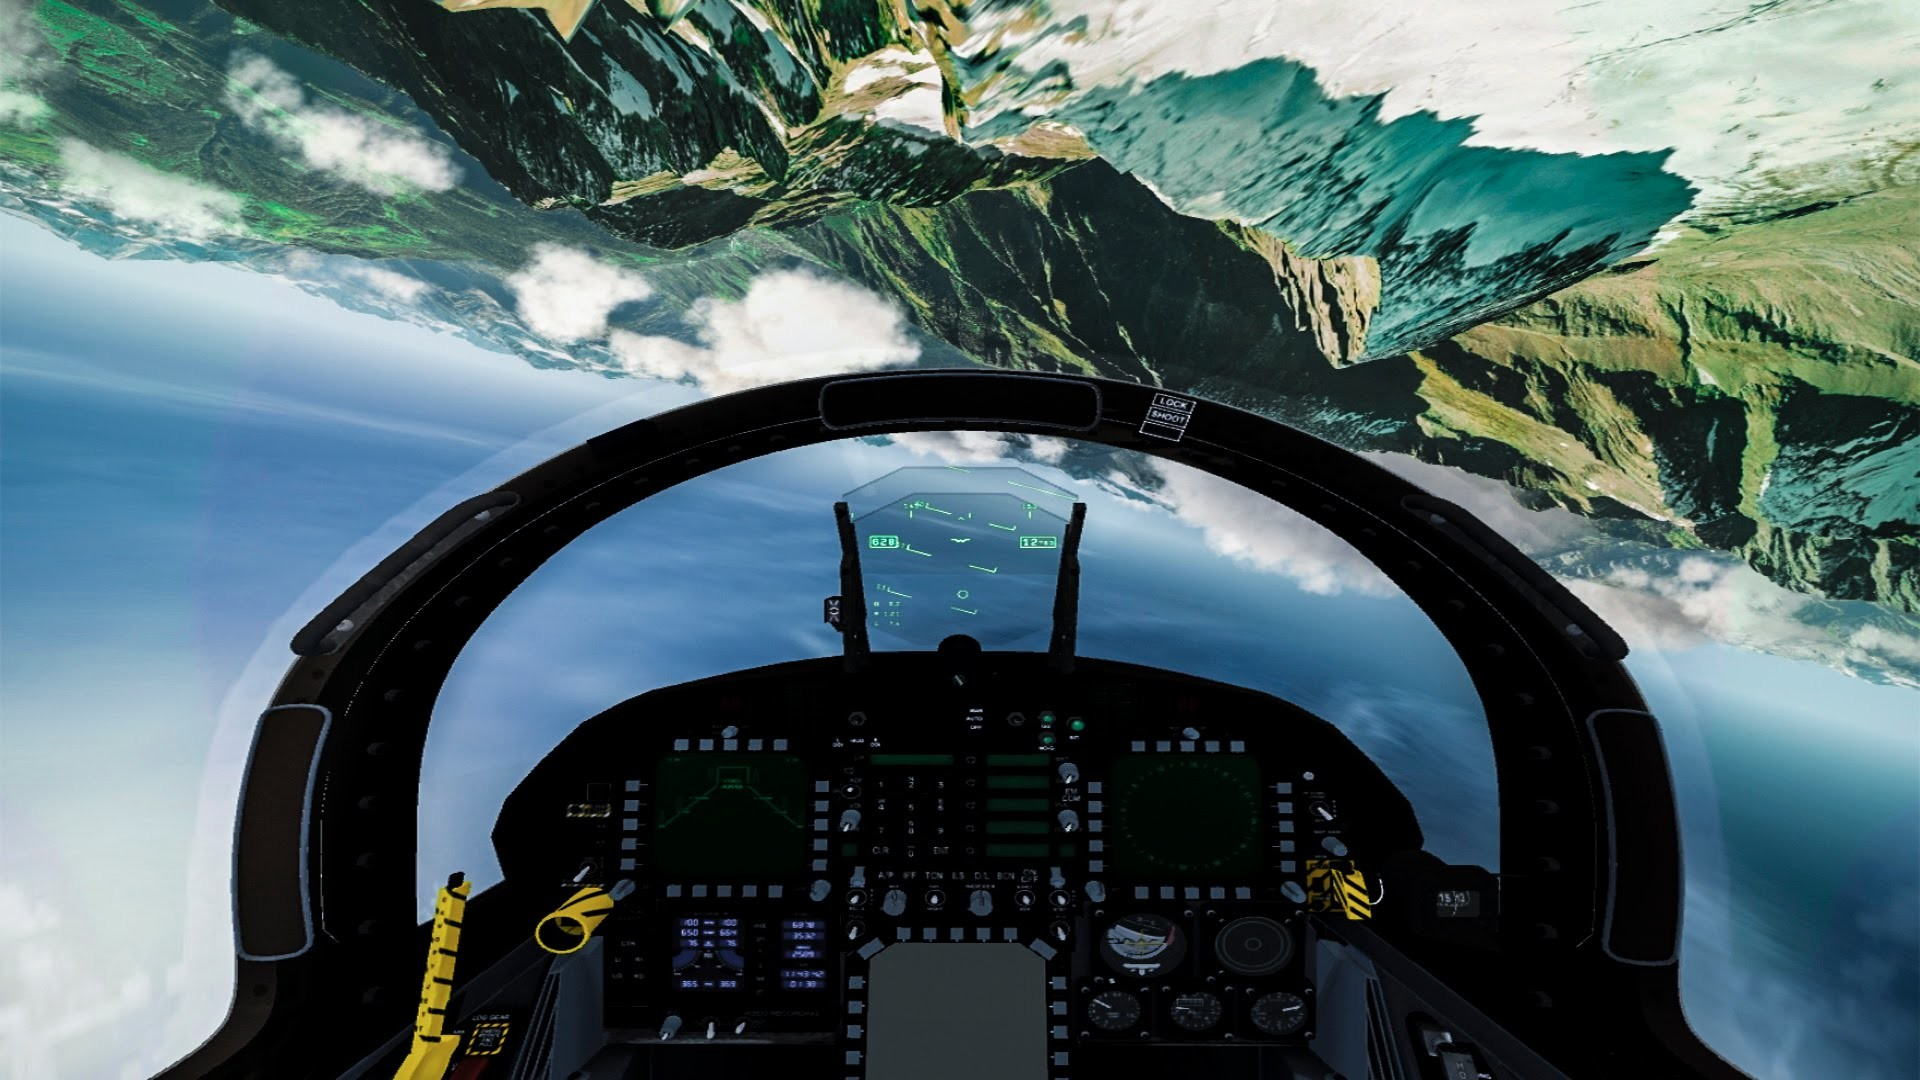 1920x1080 Extreme Flying F-18 Fighter Jet Through The Mountains (cockpit view) -  YouTube